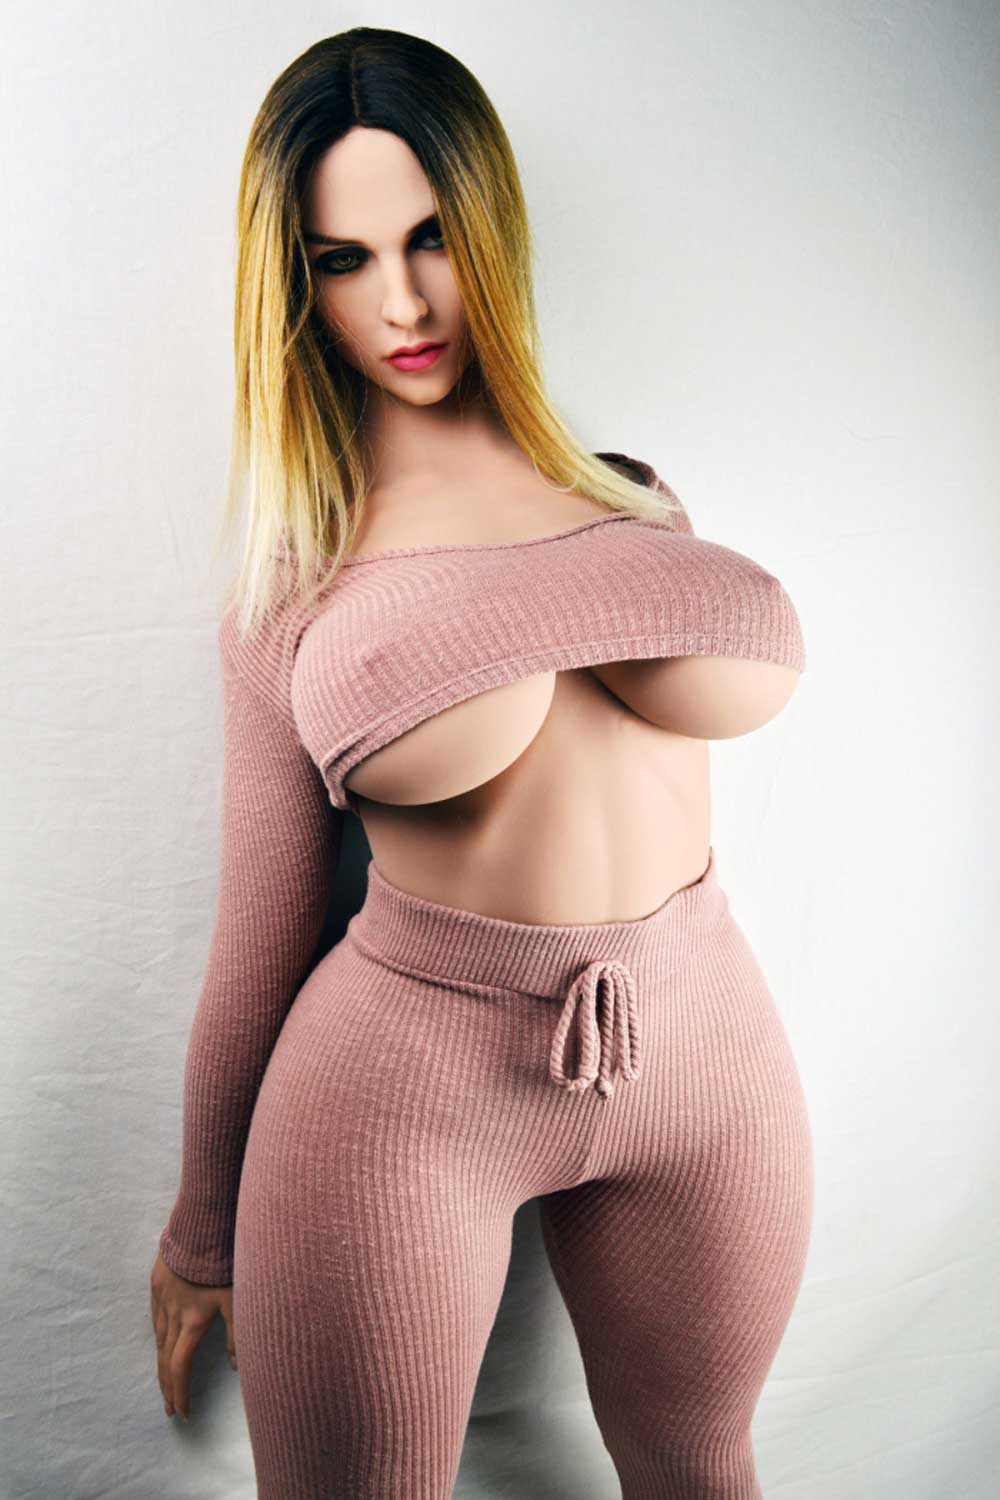 Sex doll with hands behind back